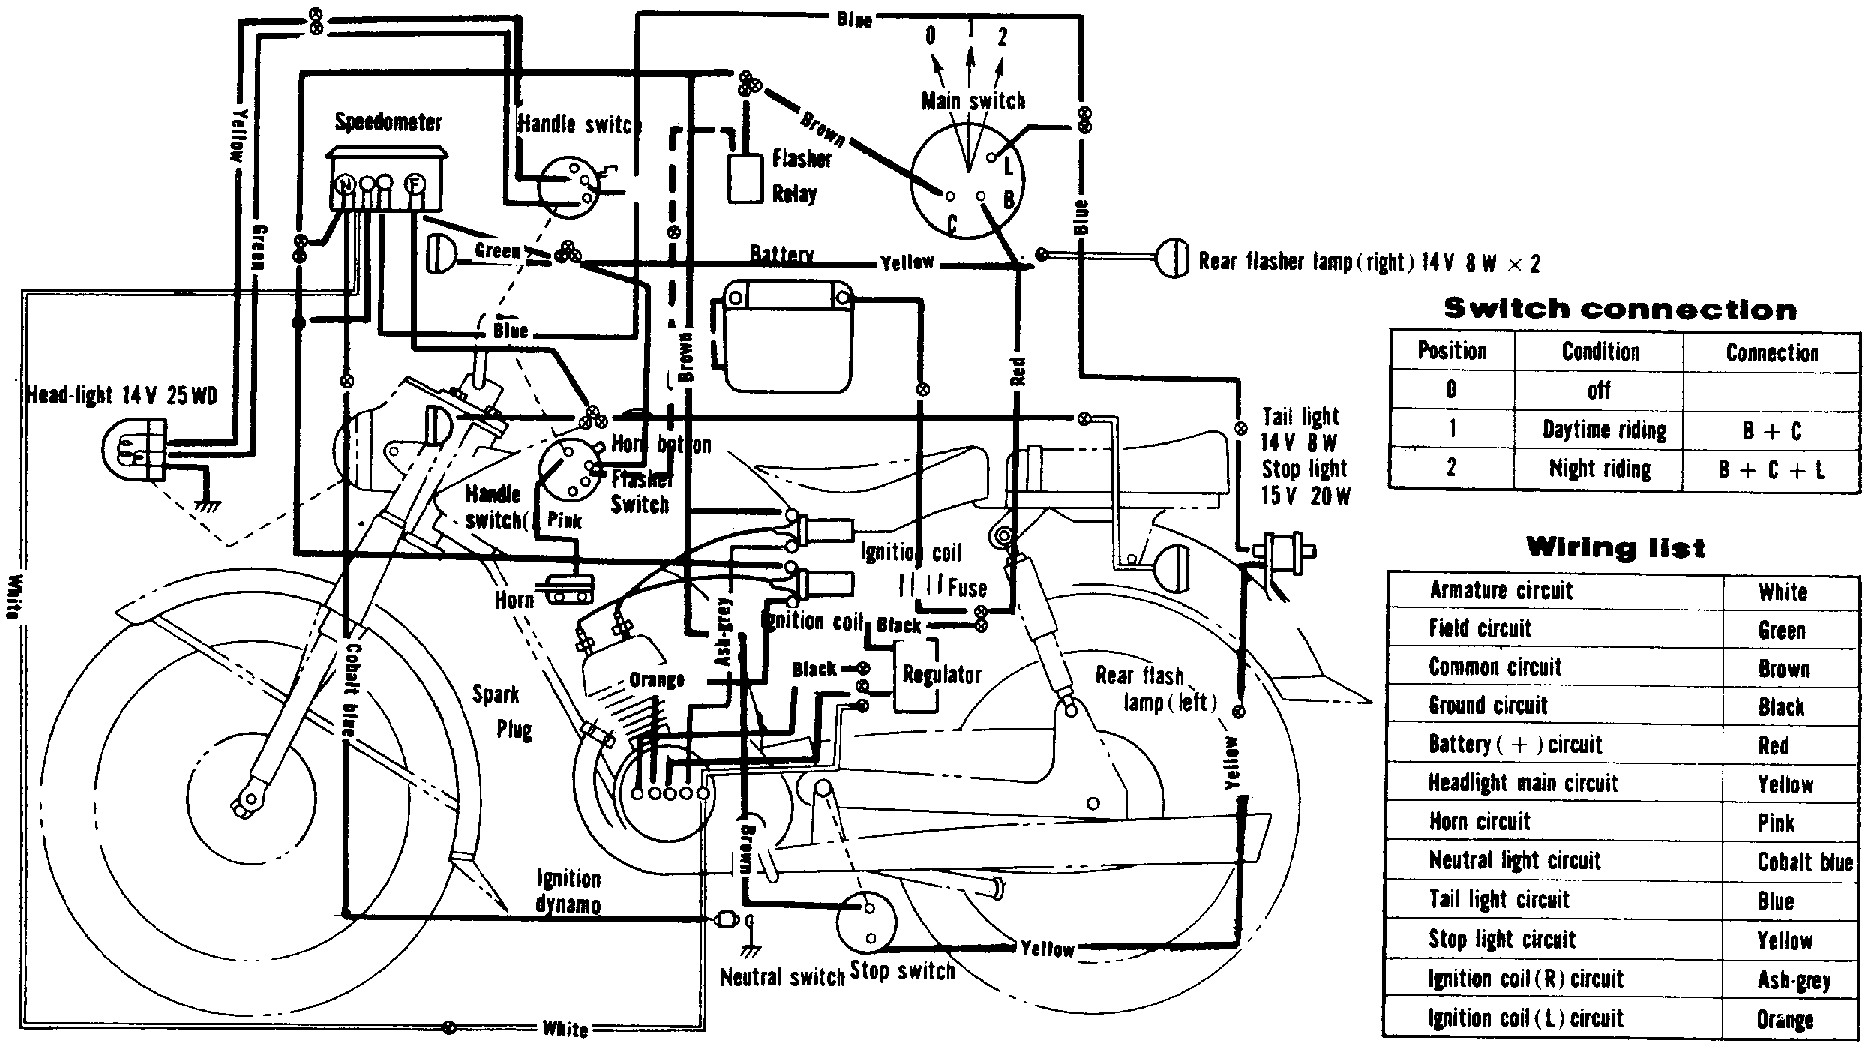 hight resolution of yamaha l2 wiring diagram wiring diagrams for arctic cat wiring diagram yamaha l2 wiring diagram